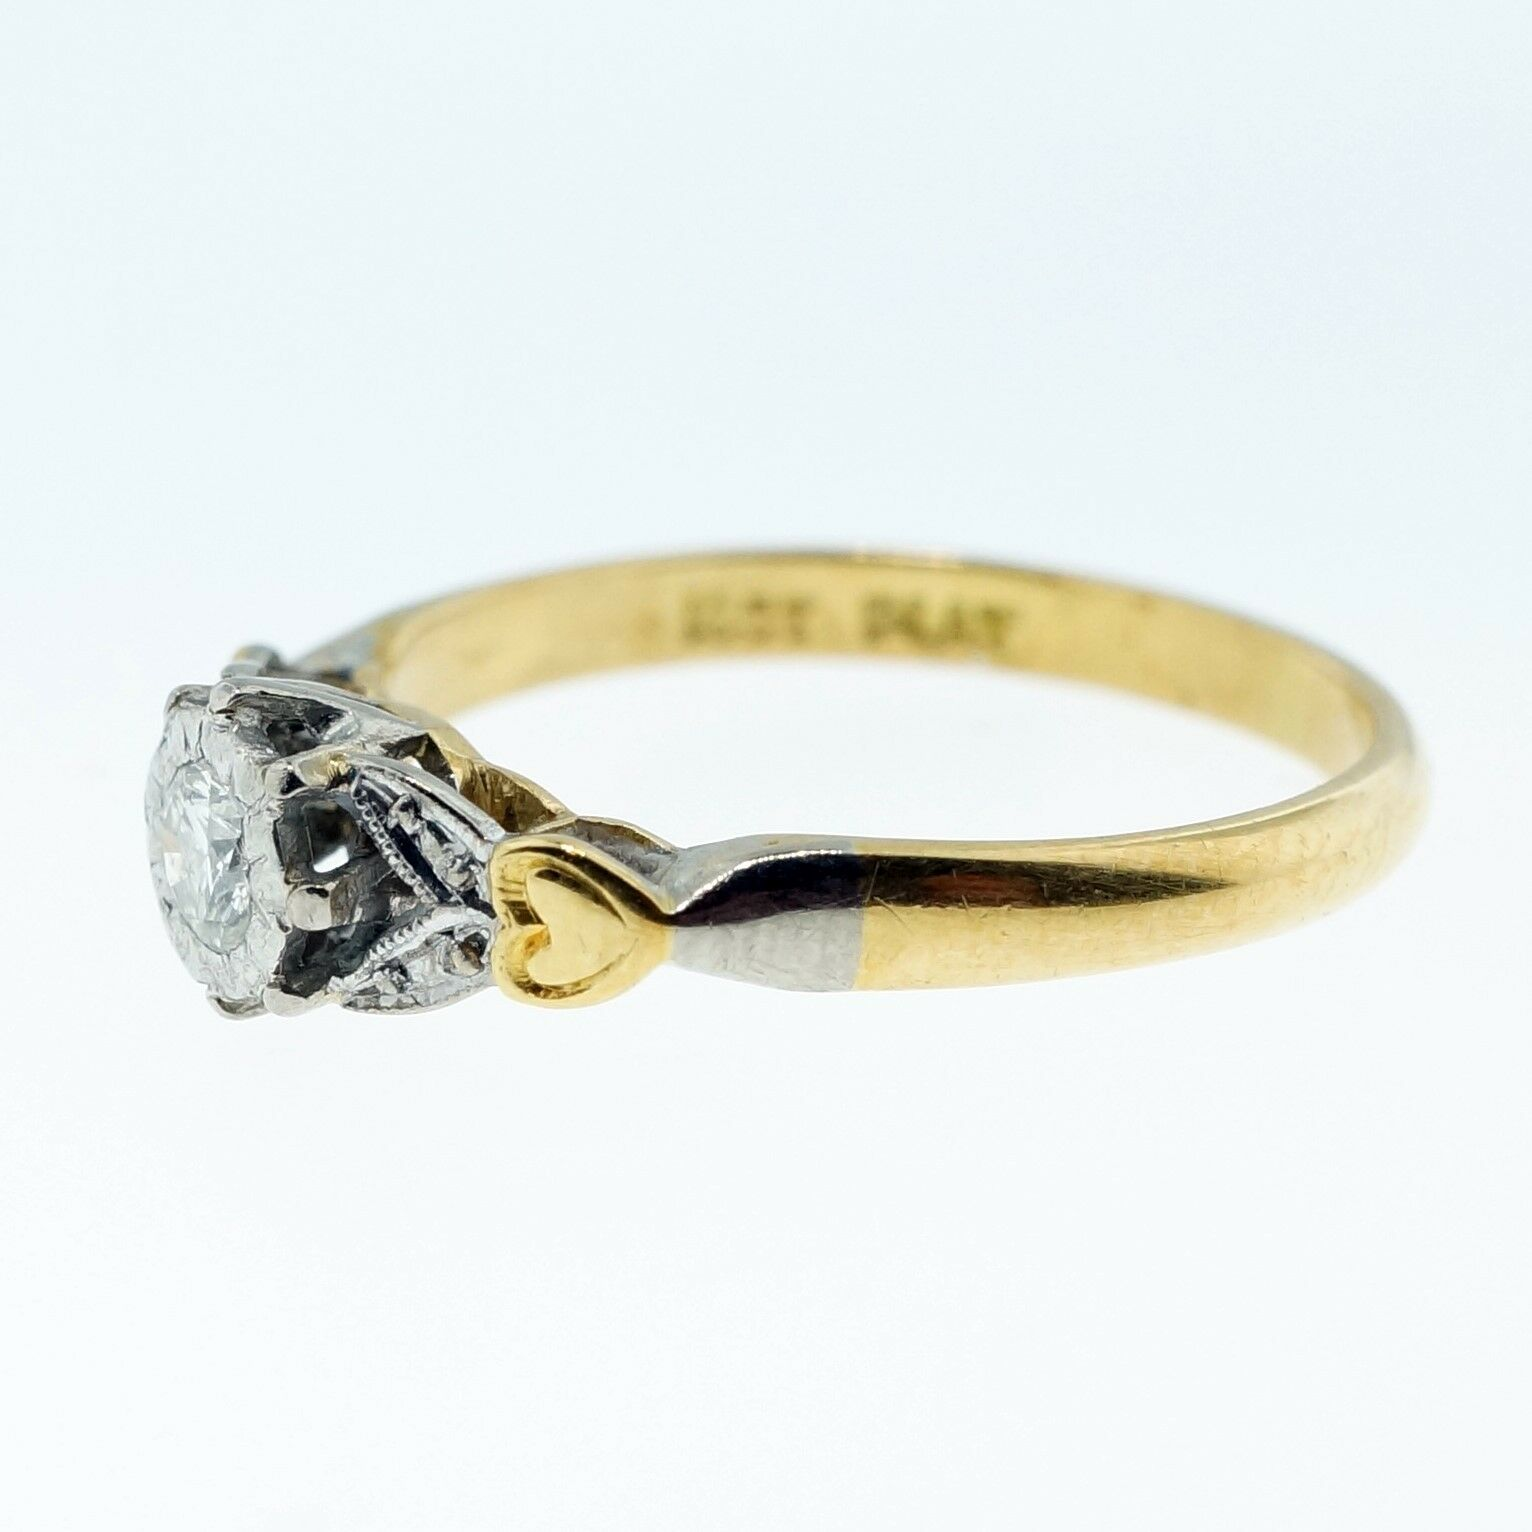 Yellow Gold Diamond Platinum: Vintage 18ct Yellow Gold & Platinum Diamond Solitaire Ring